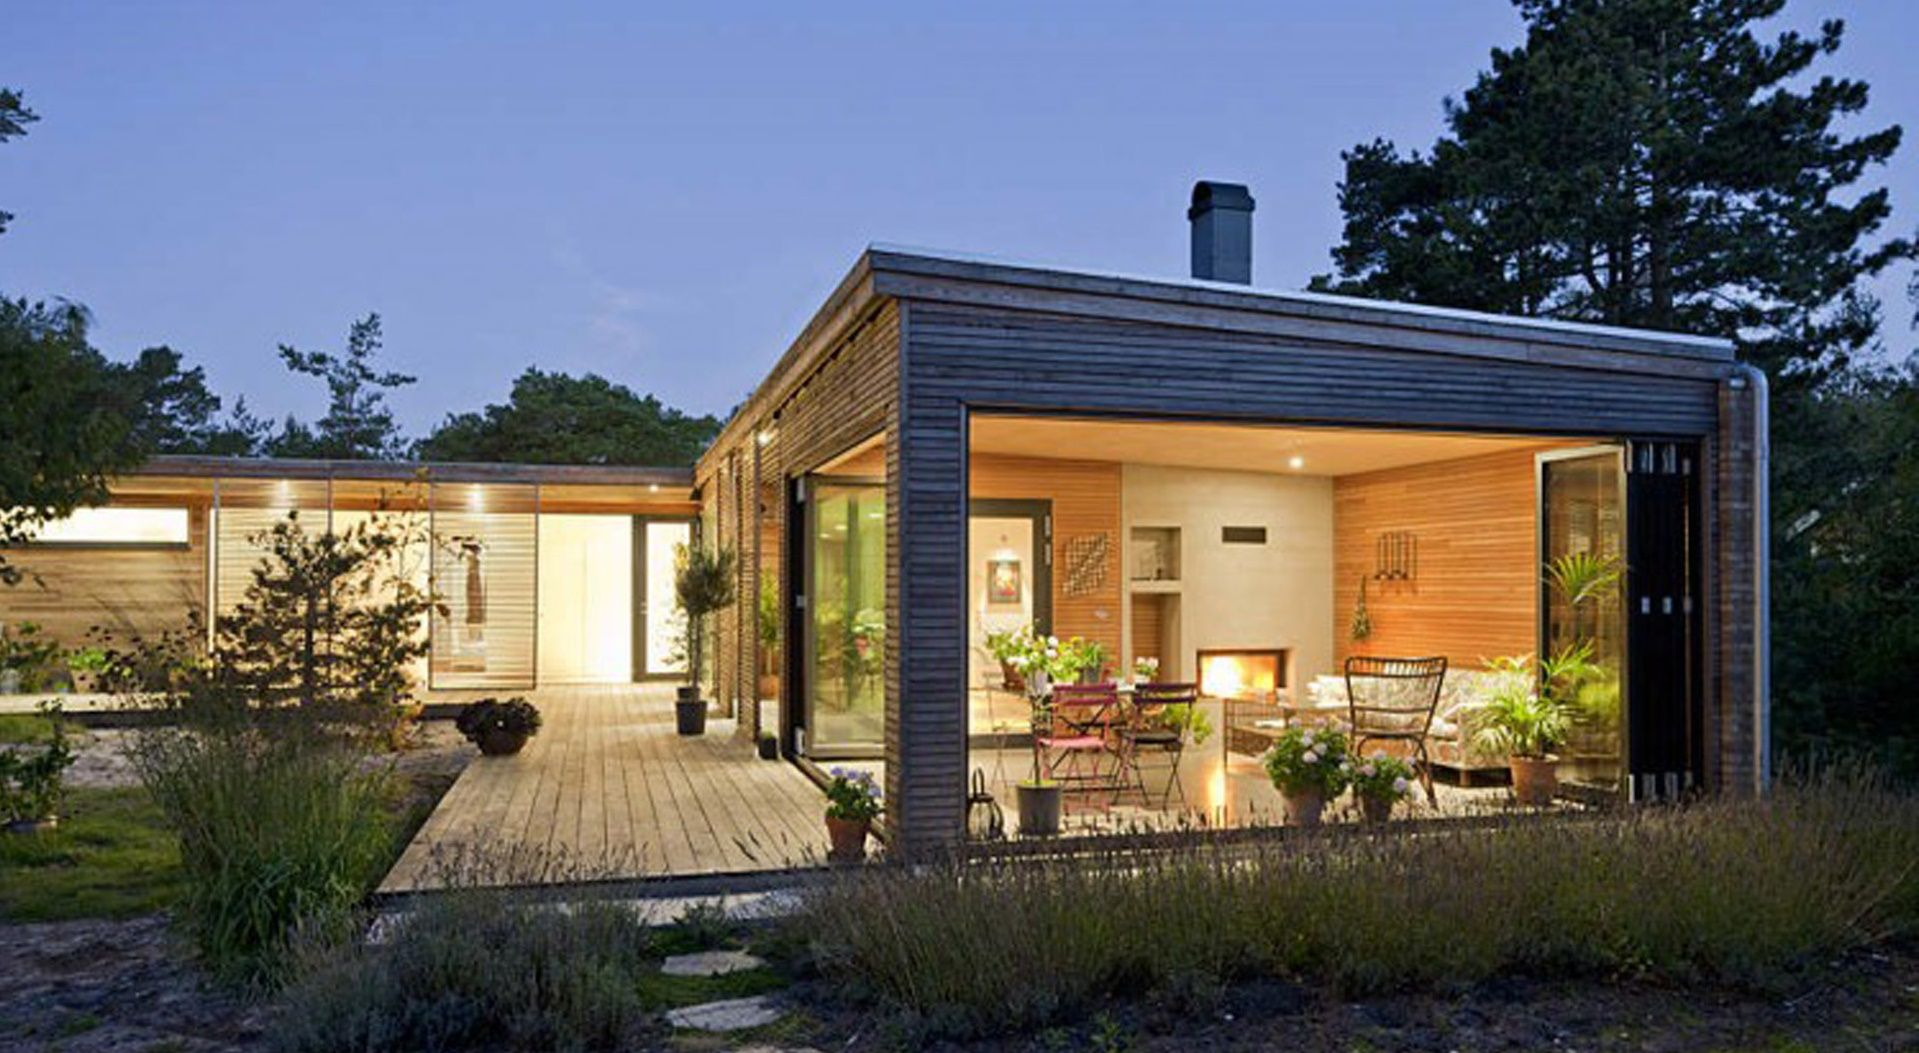 Small house designs tiny house kits in the prefab small home with modern impression look like luxury home for your